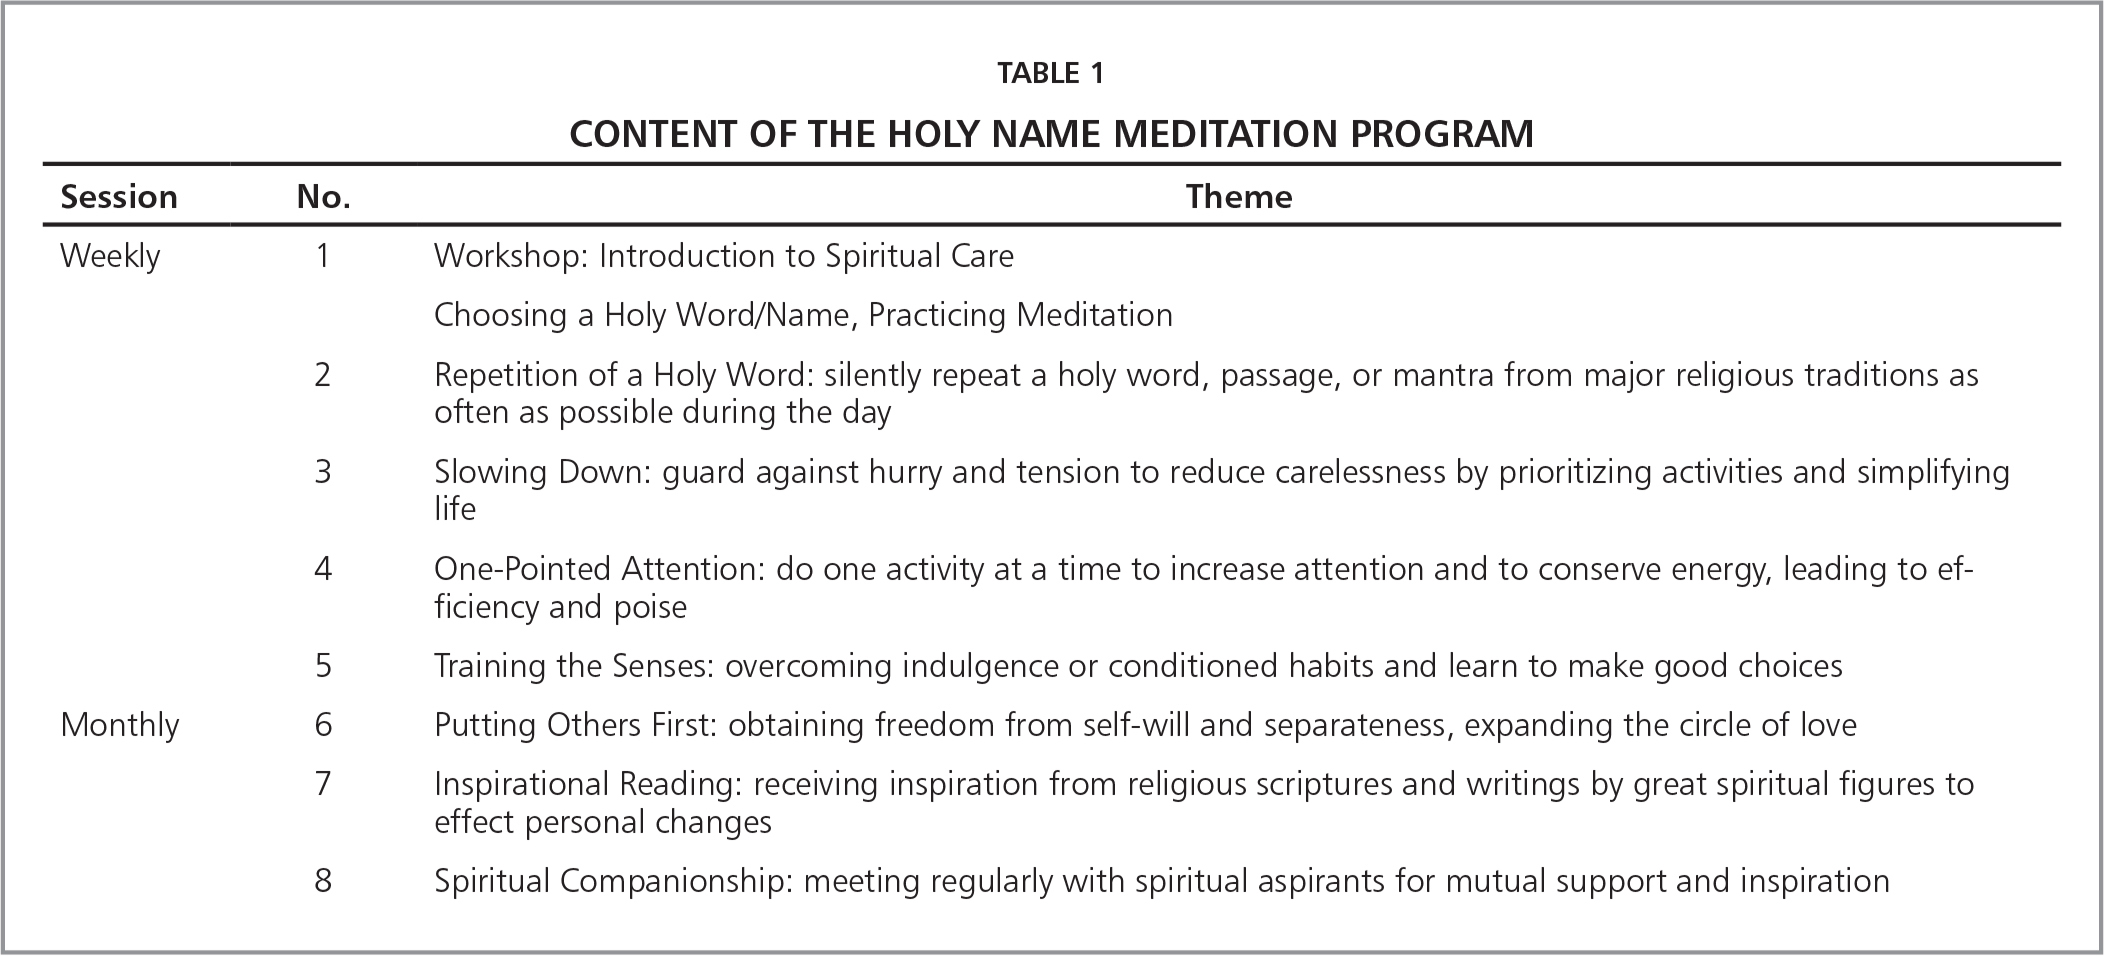 Content of The Holy Name Meditation Program